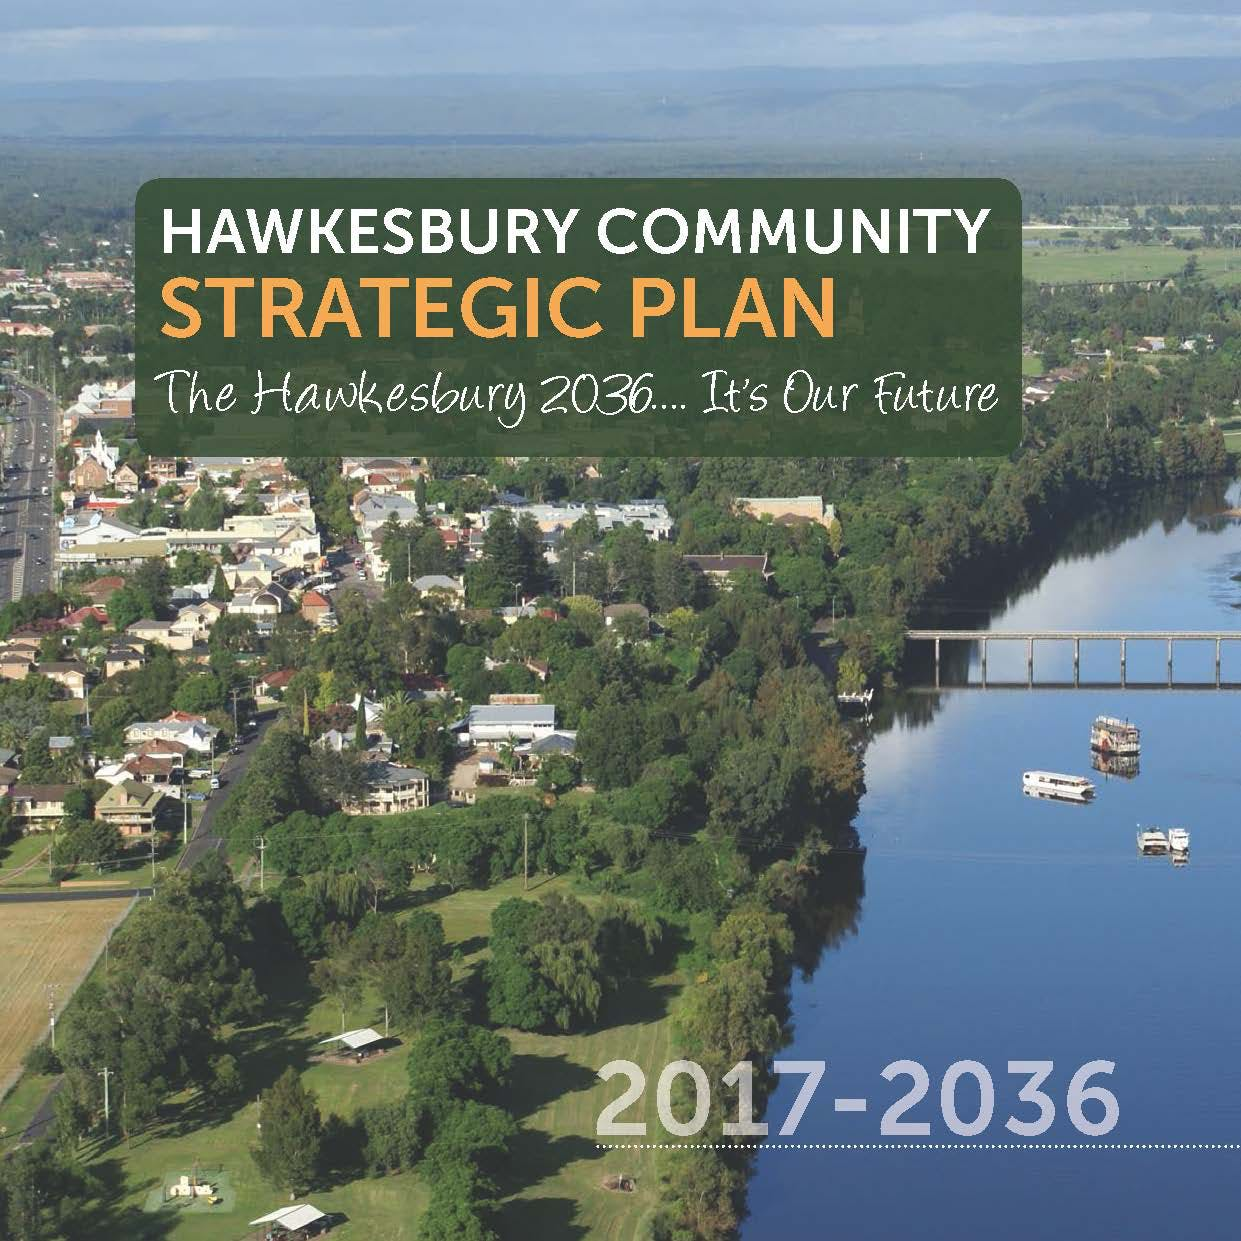 Hawkesbury Community Strategic Plan 2017-2036